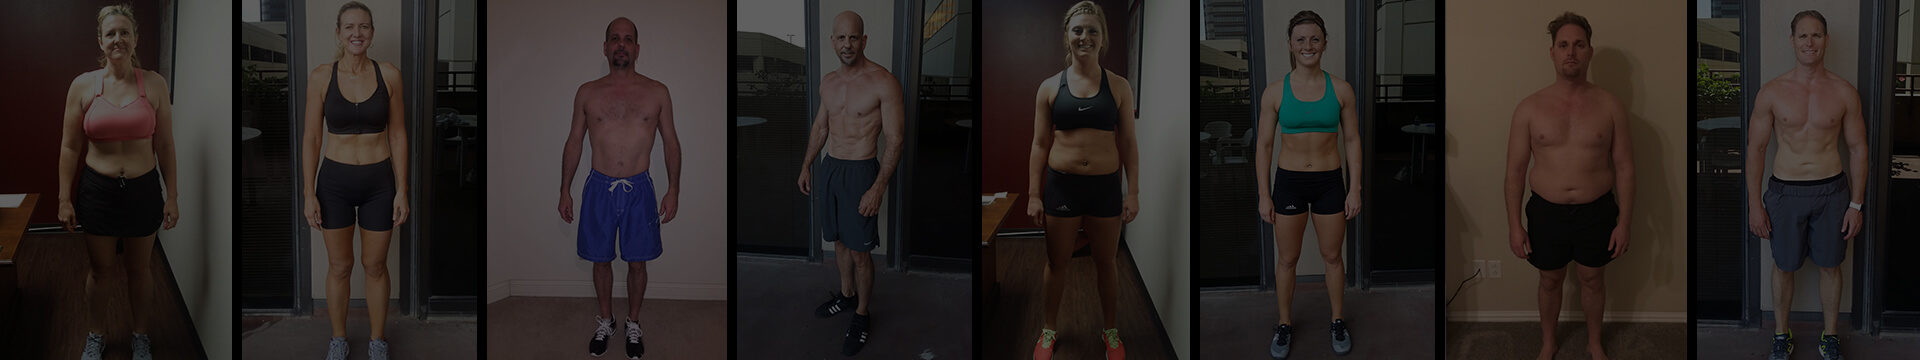 AFS Premier Fitness transformations banner